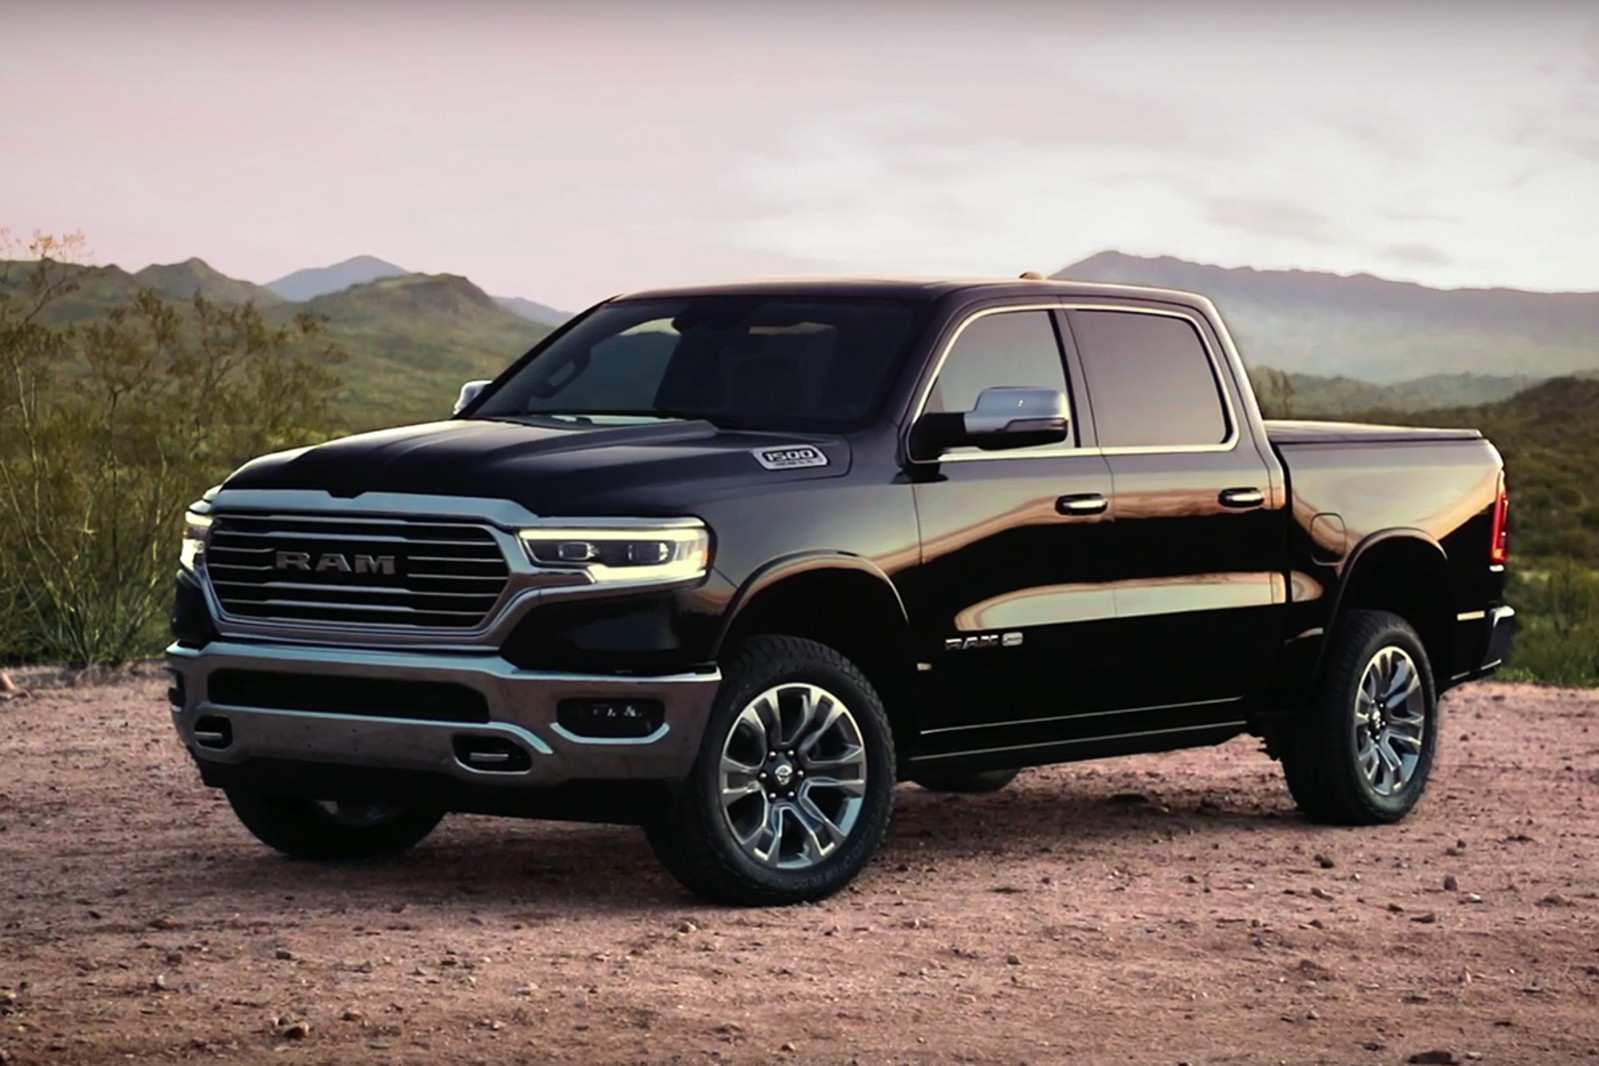 83 New New Truck Dodge 2019 Release Date Research New for New Truck Dodge 2019 Release Date